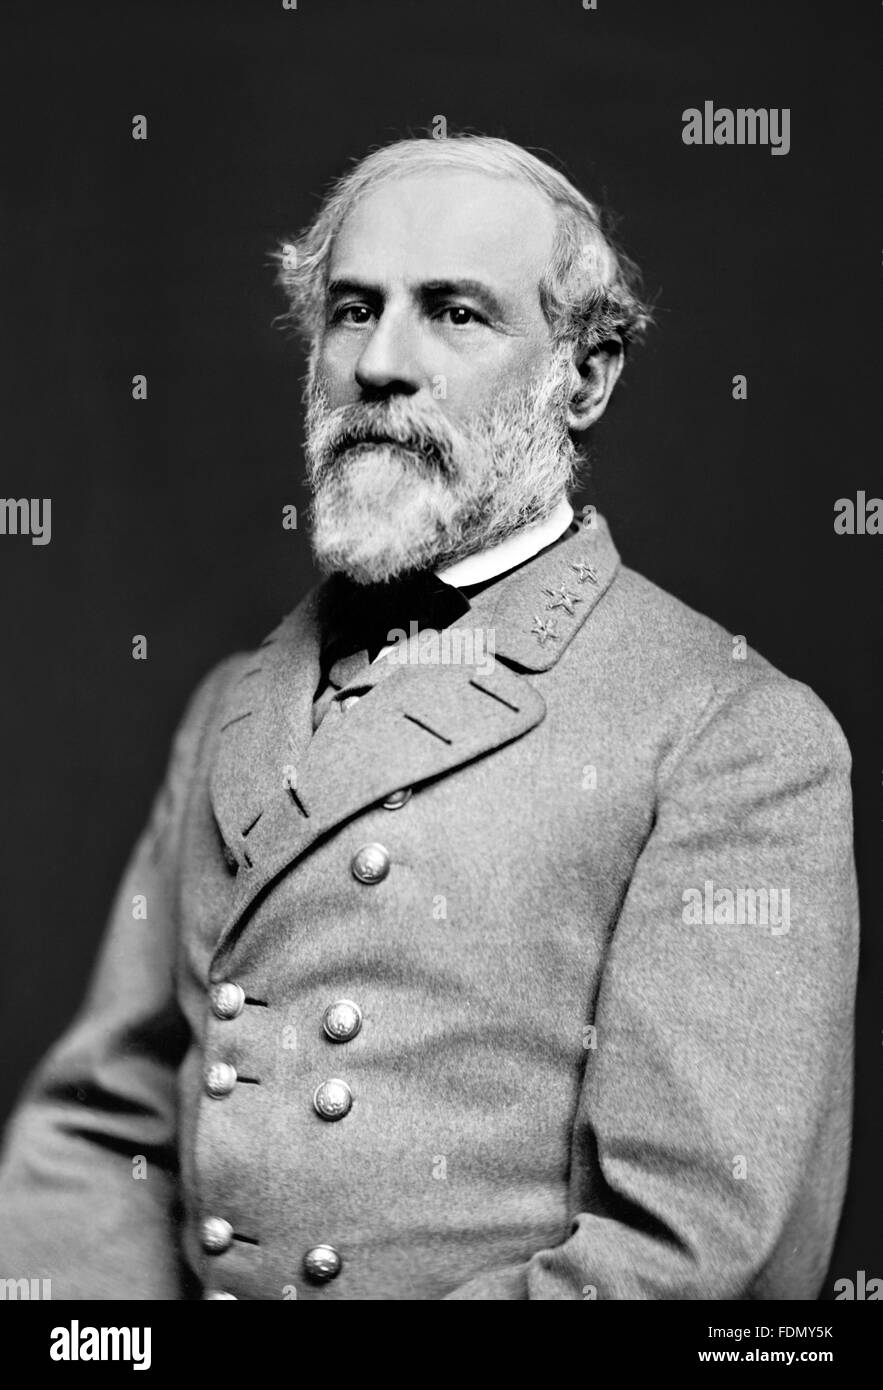 Robert E Lee. Civil War Confederate Army General Robert E Lee. Photo by Julian Vannerso, March 1864 - Stock Image